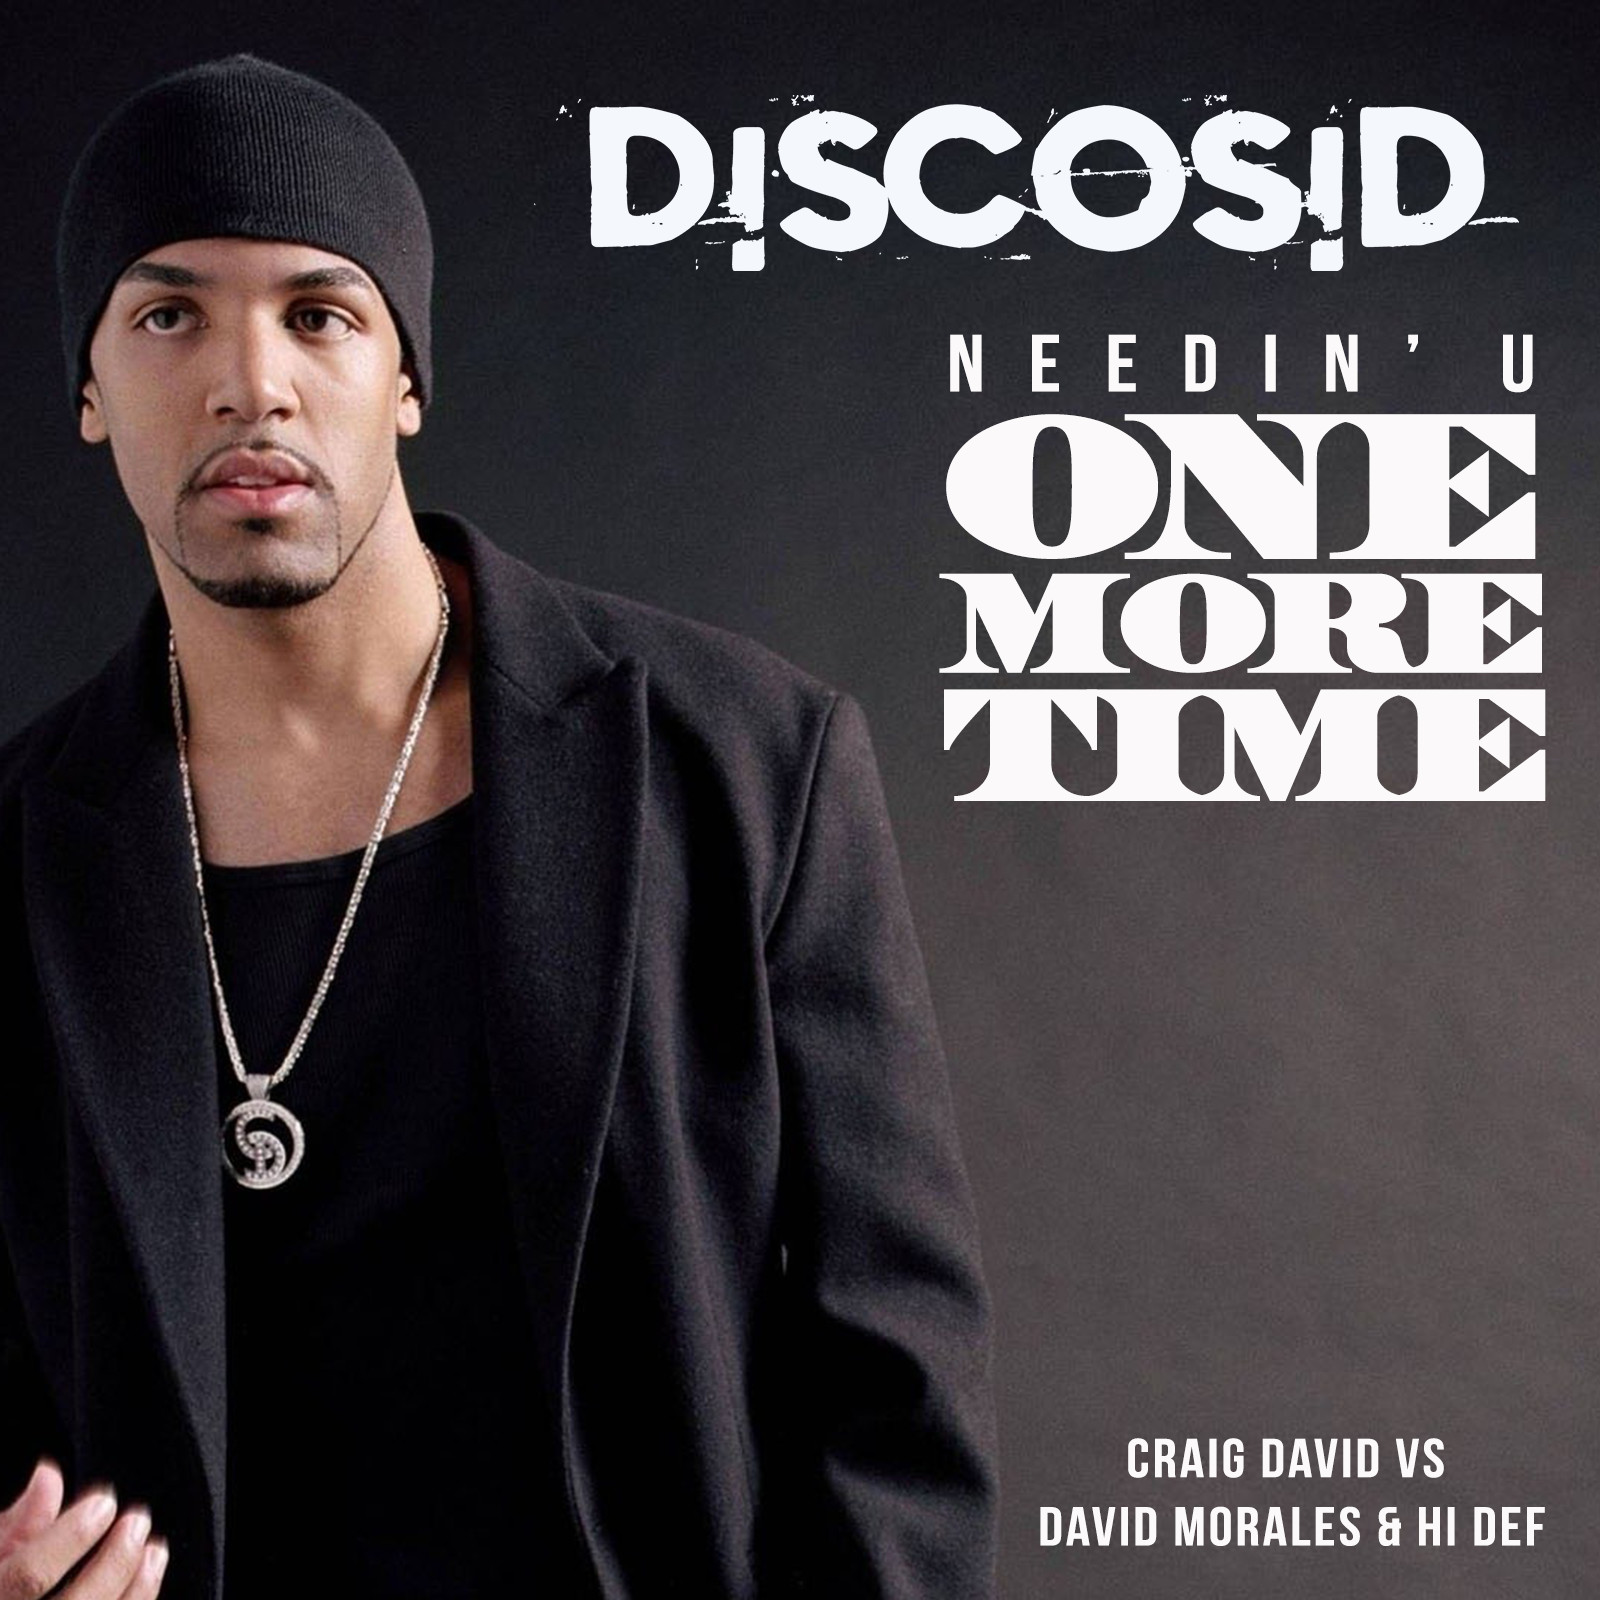 Craig David Vs David Morales & Hi Def - Needin' U One More Time (Discosid Mashup)